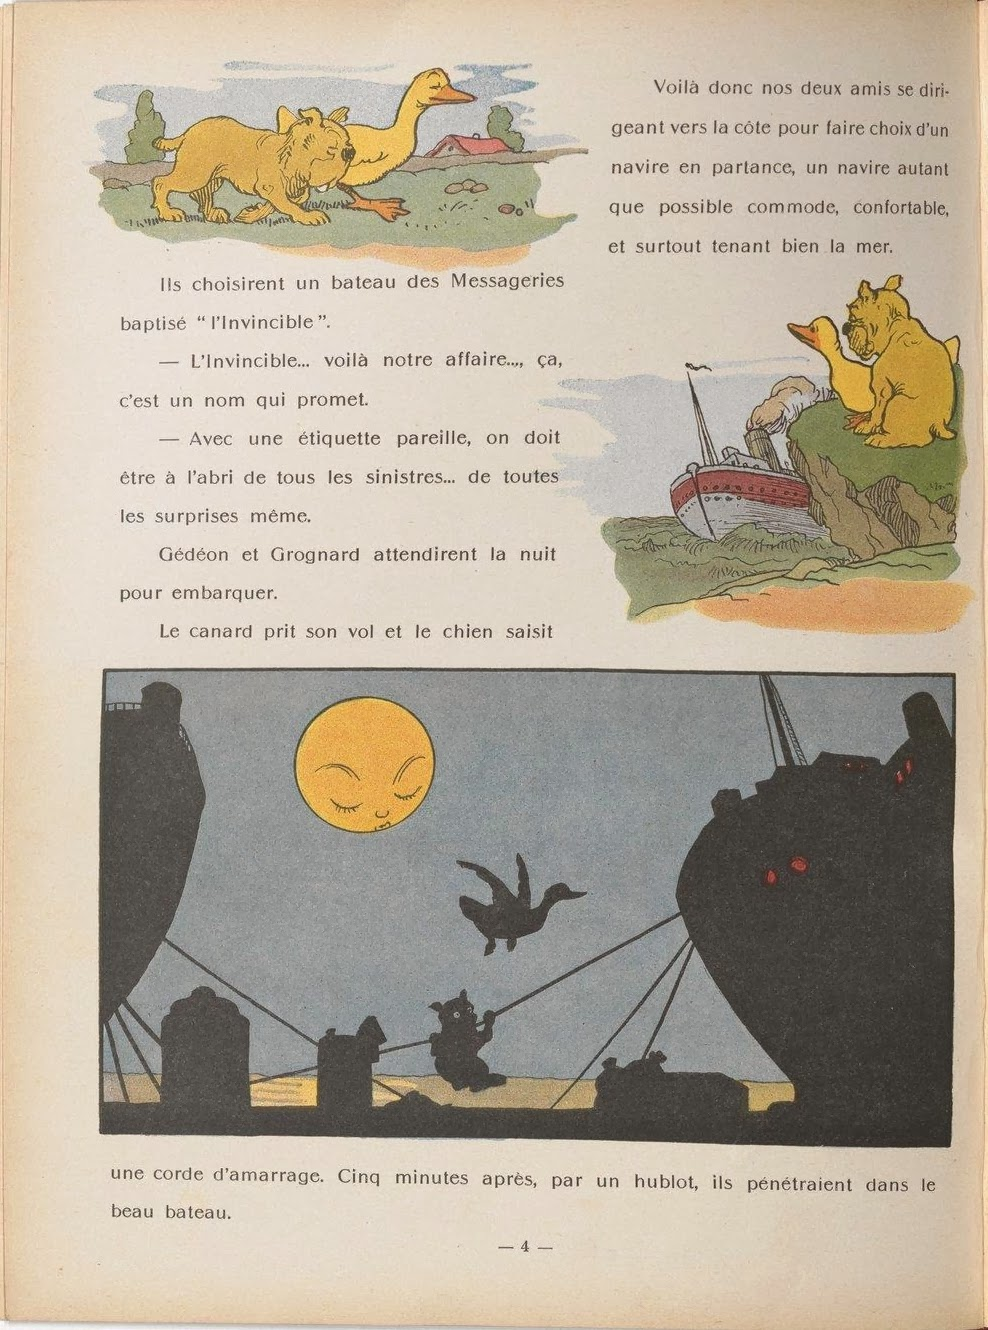 3 kids book illustration vignettes between French text